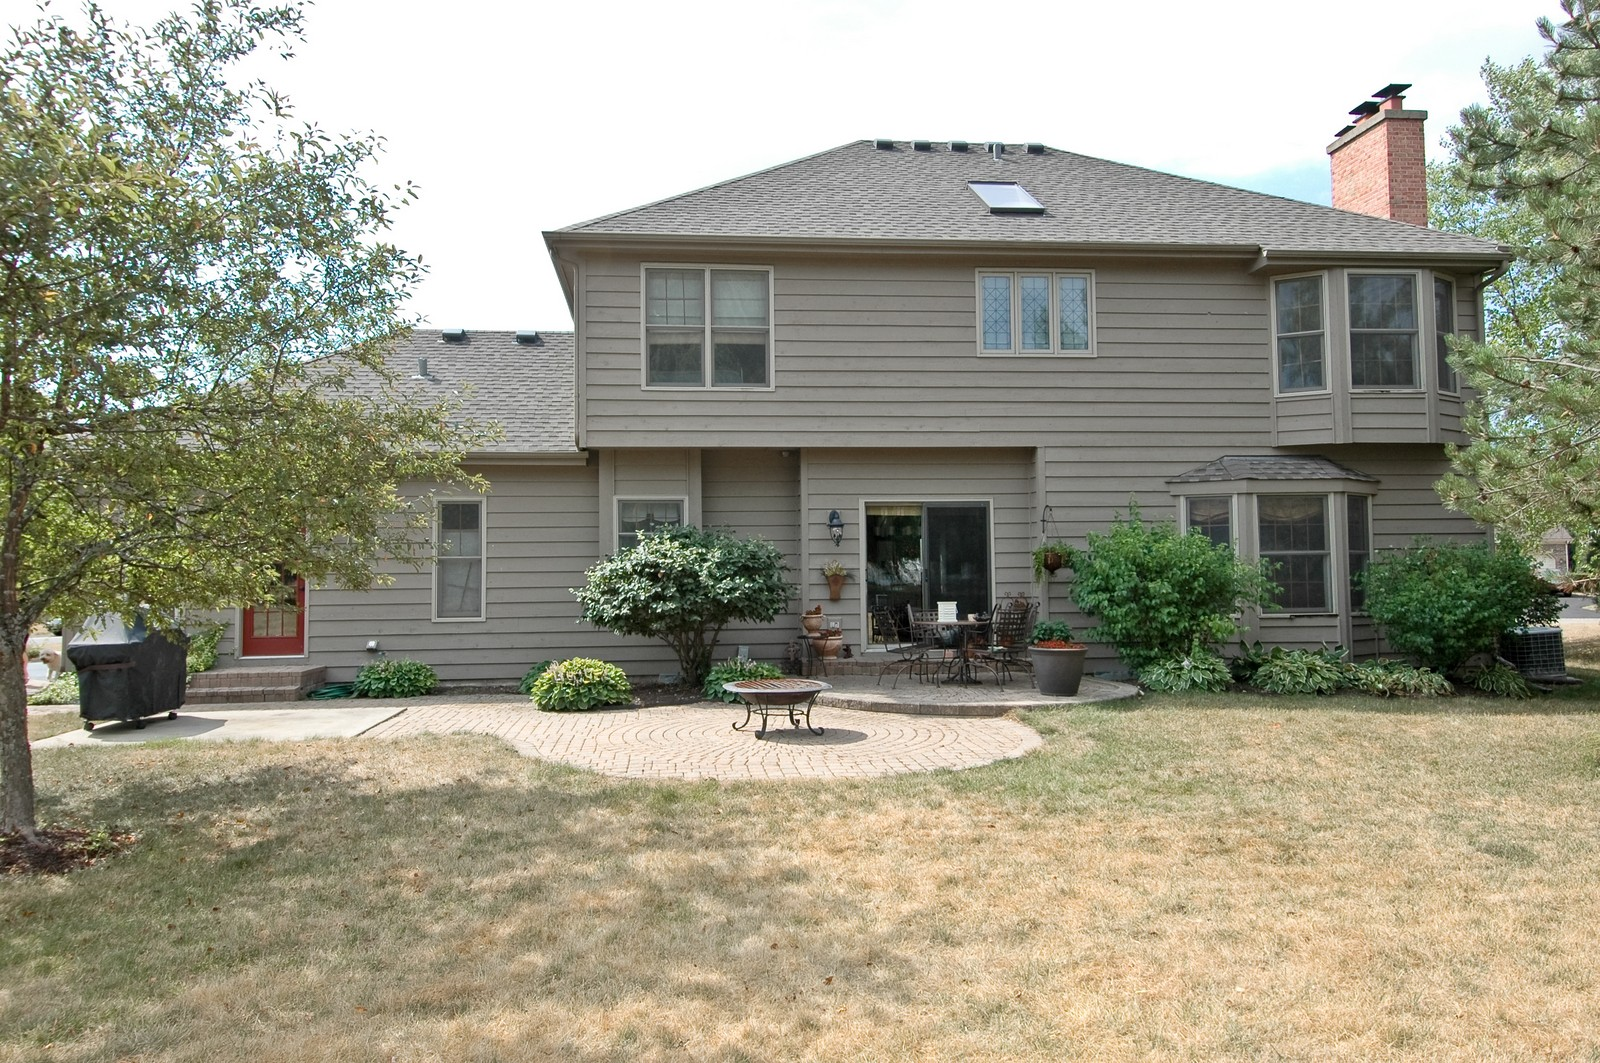 Real Estate Photography - 3500 Persimmon Dr, Algonquin, IL, 60102 - Rear View